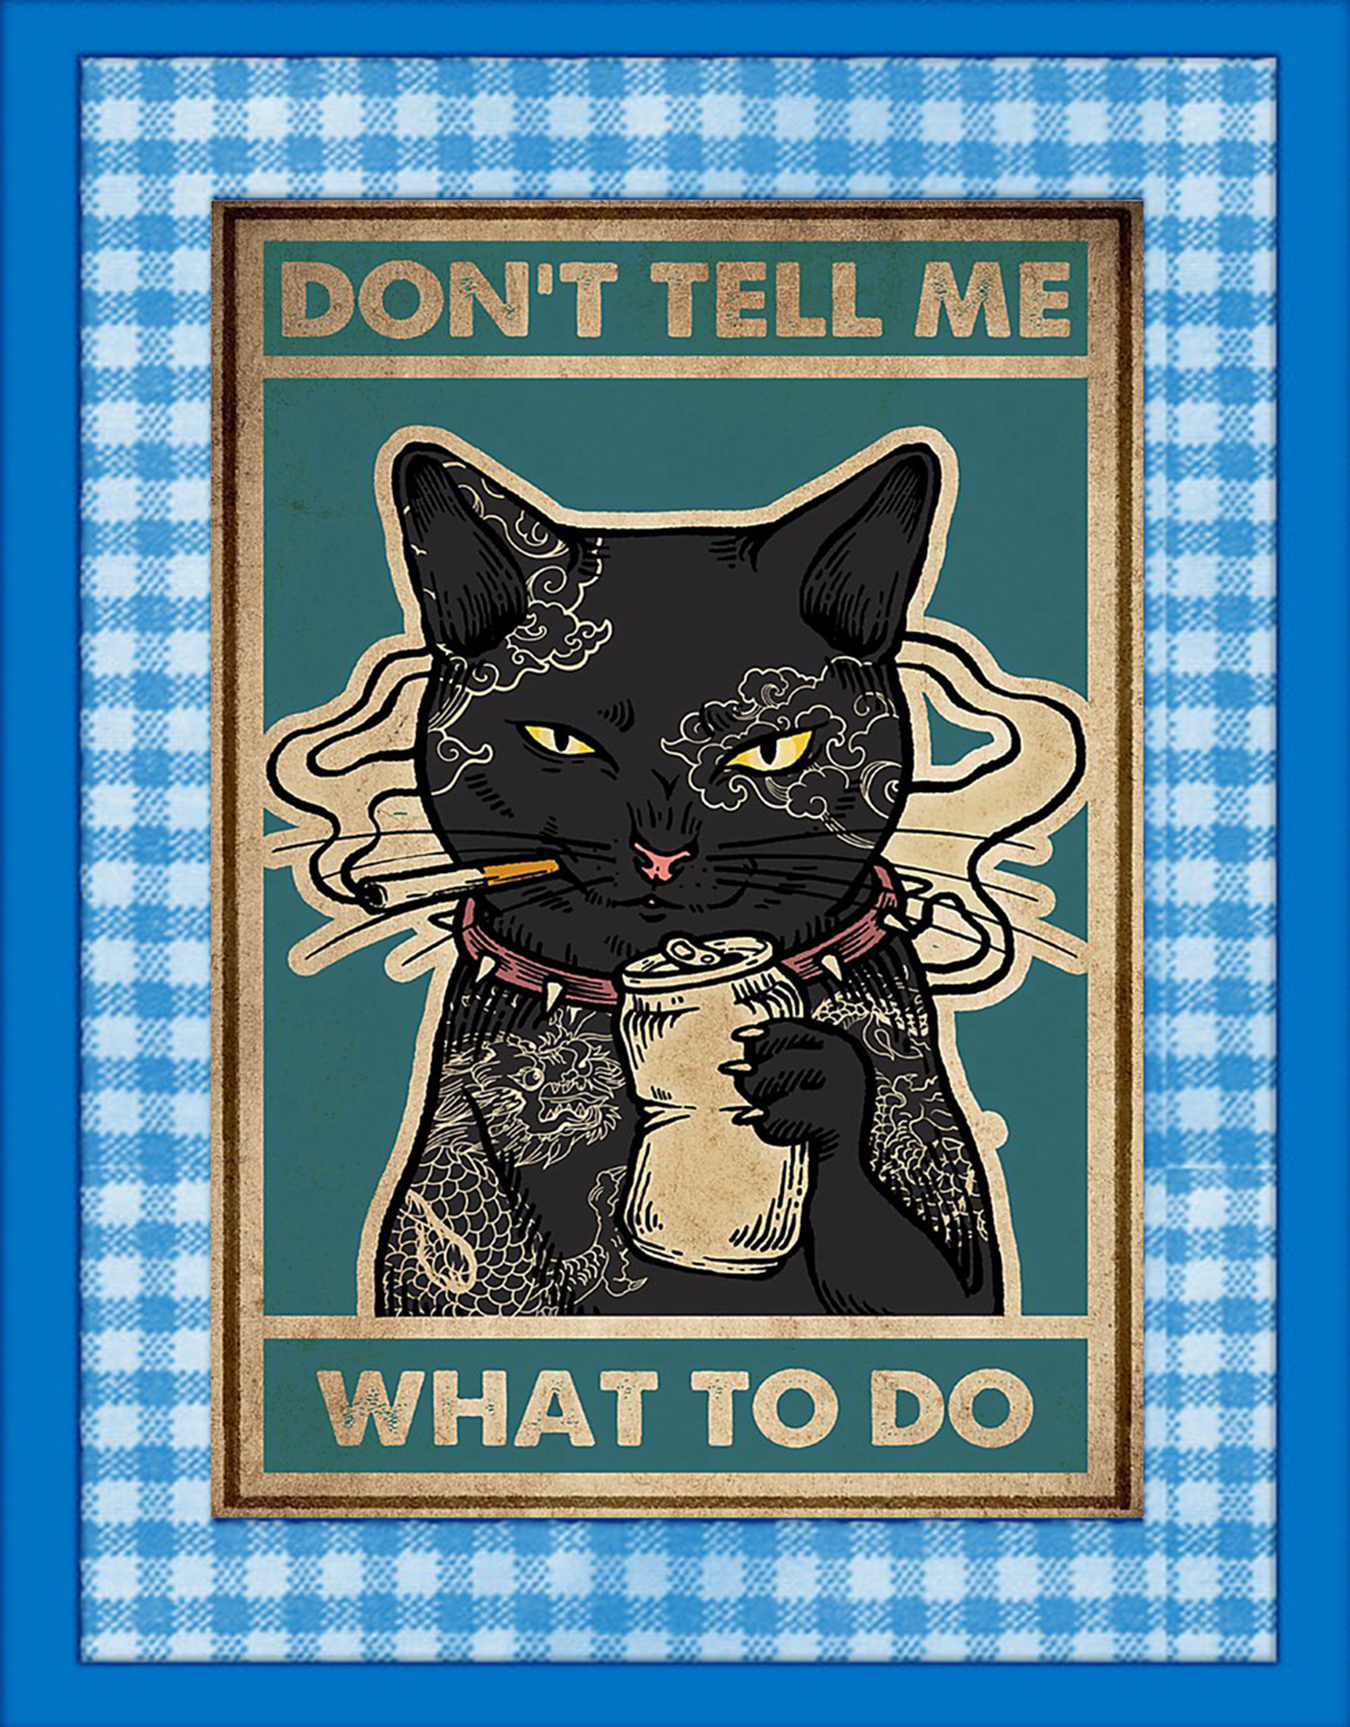 Don't tell me what to do Cat Smoking Poster-a3